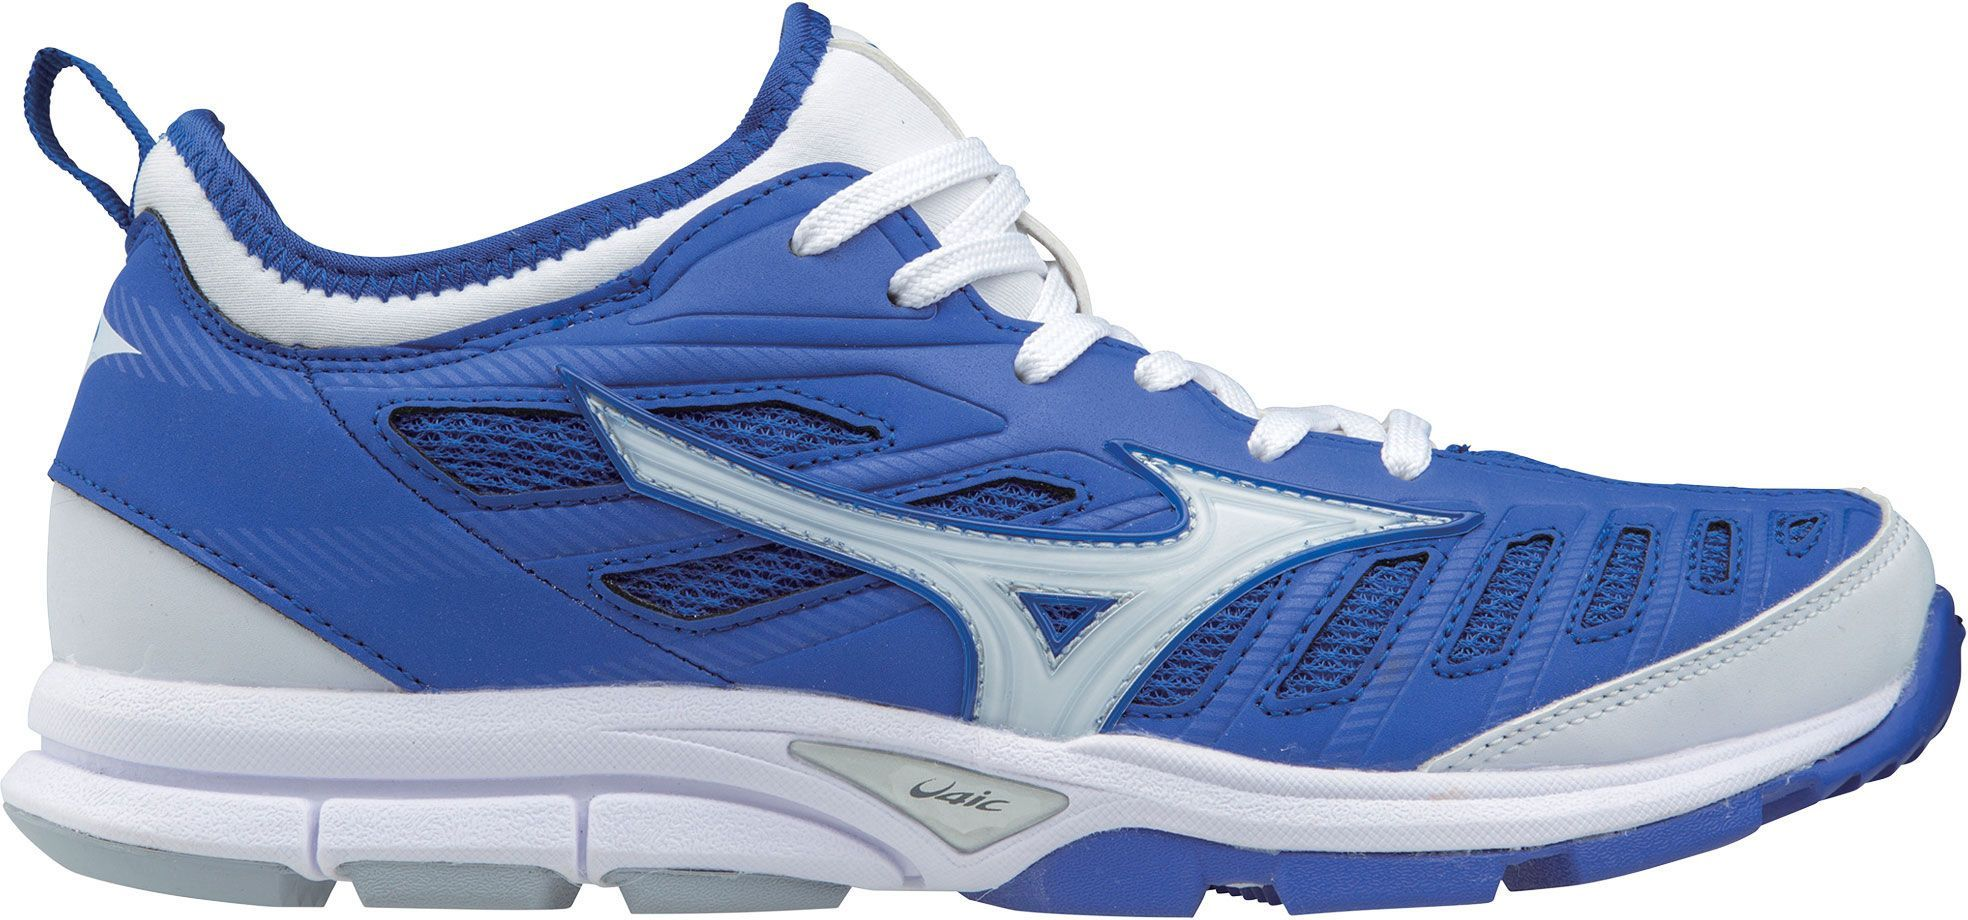 51d3d0fa0e9 Mizuno Women's Players Trainer 2 Softball Turf Shoes | Products ...